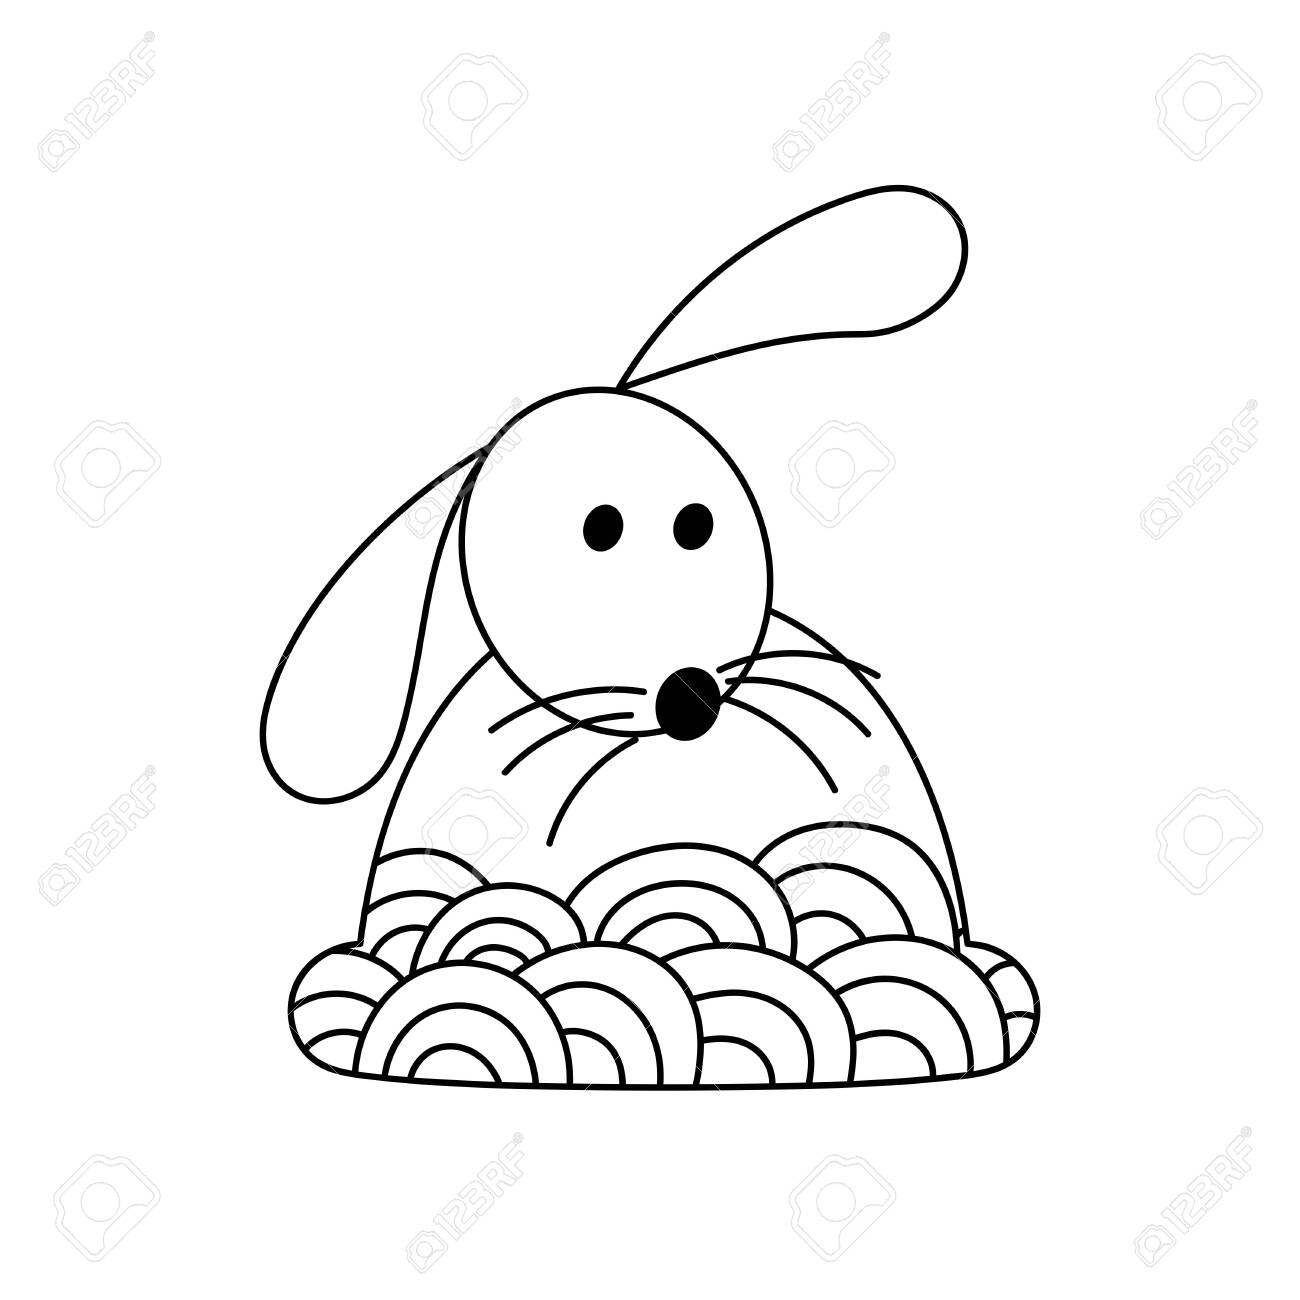 Cute Hand Drawn Rabbit Coloring Pages For Adults And Kids Easter Royalty Free Cliparts Vectors And Stock Illustration Image 134452744